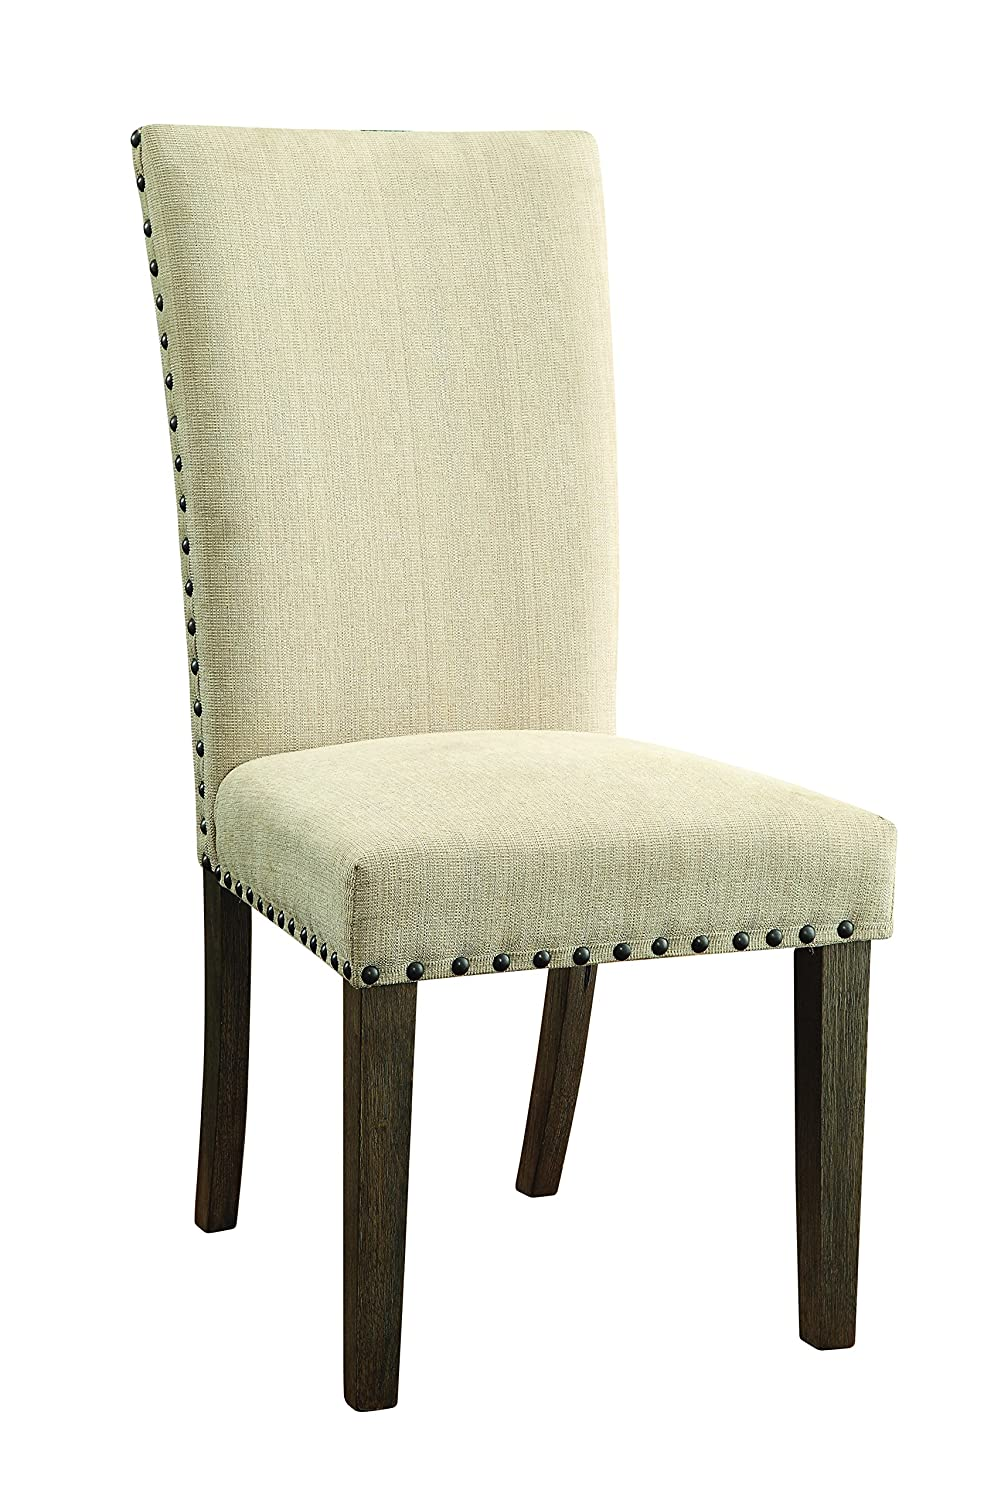 Webber Upholstery Side Chairs with Nailhead Trim Tan and Driftwood (Set of 2)